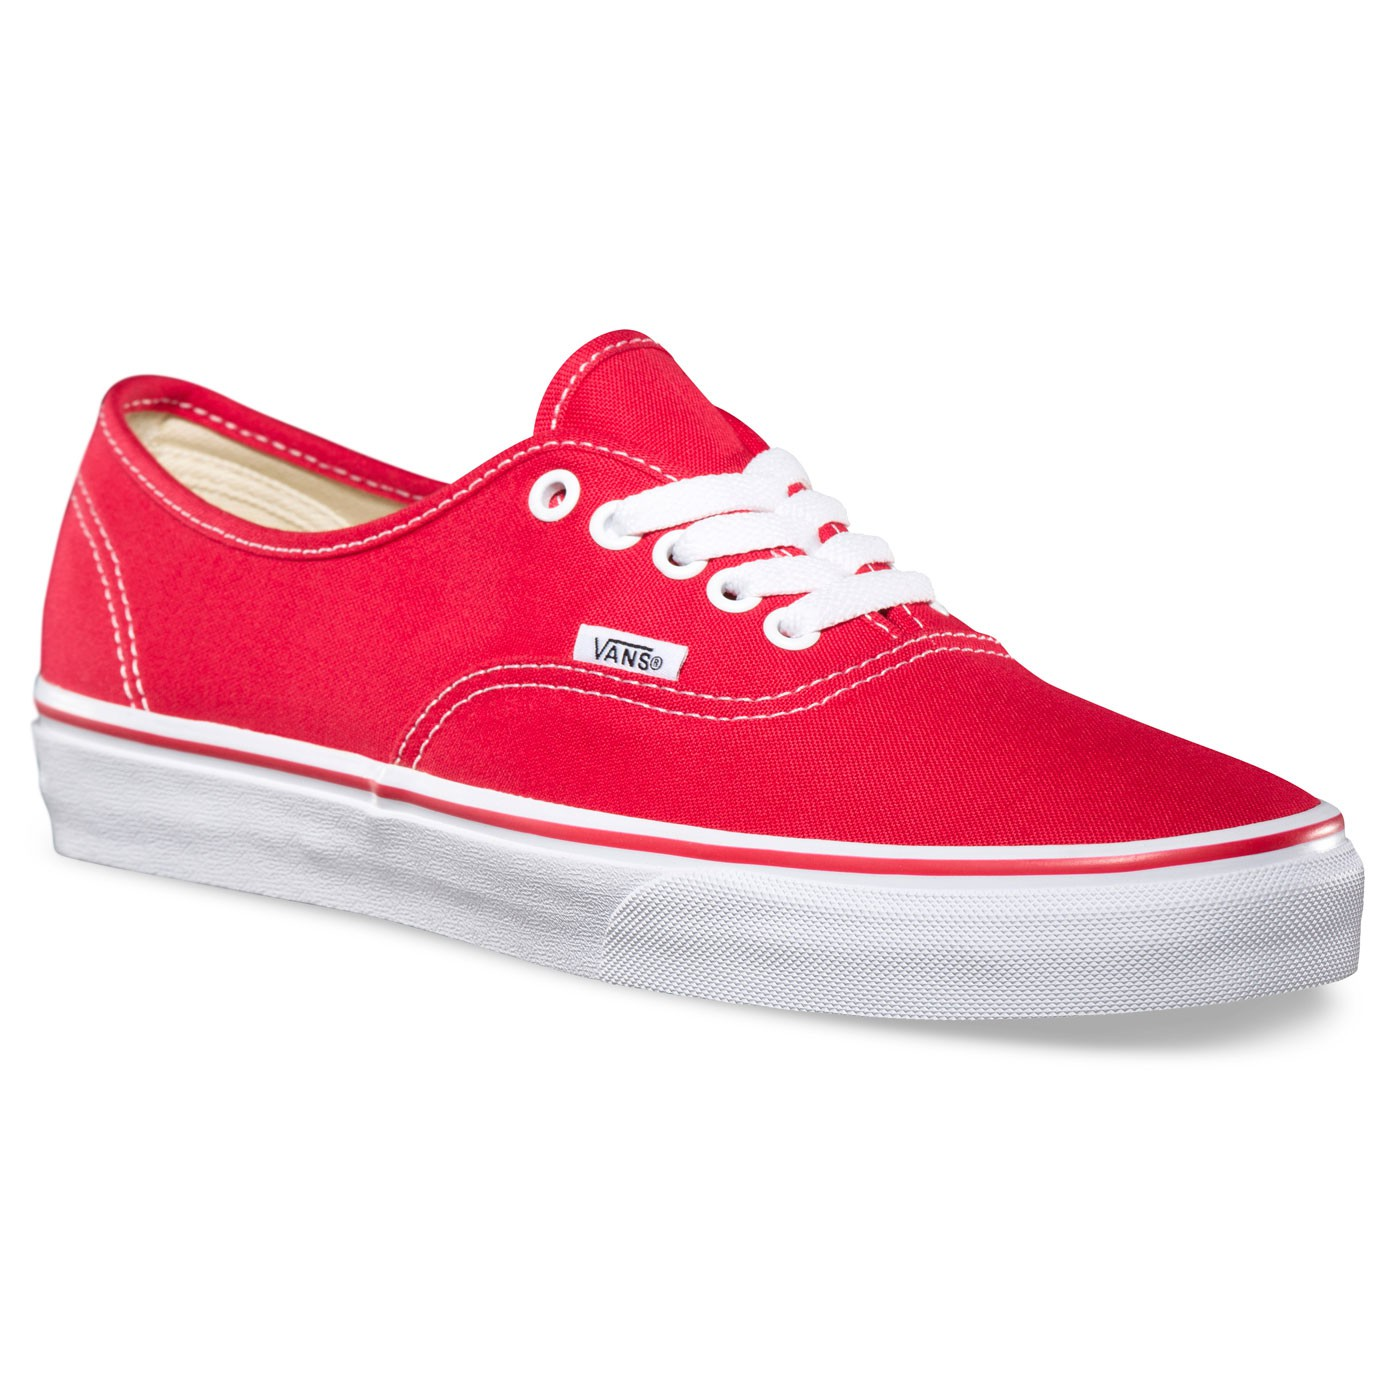 Tenisky Vans Authentic red